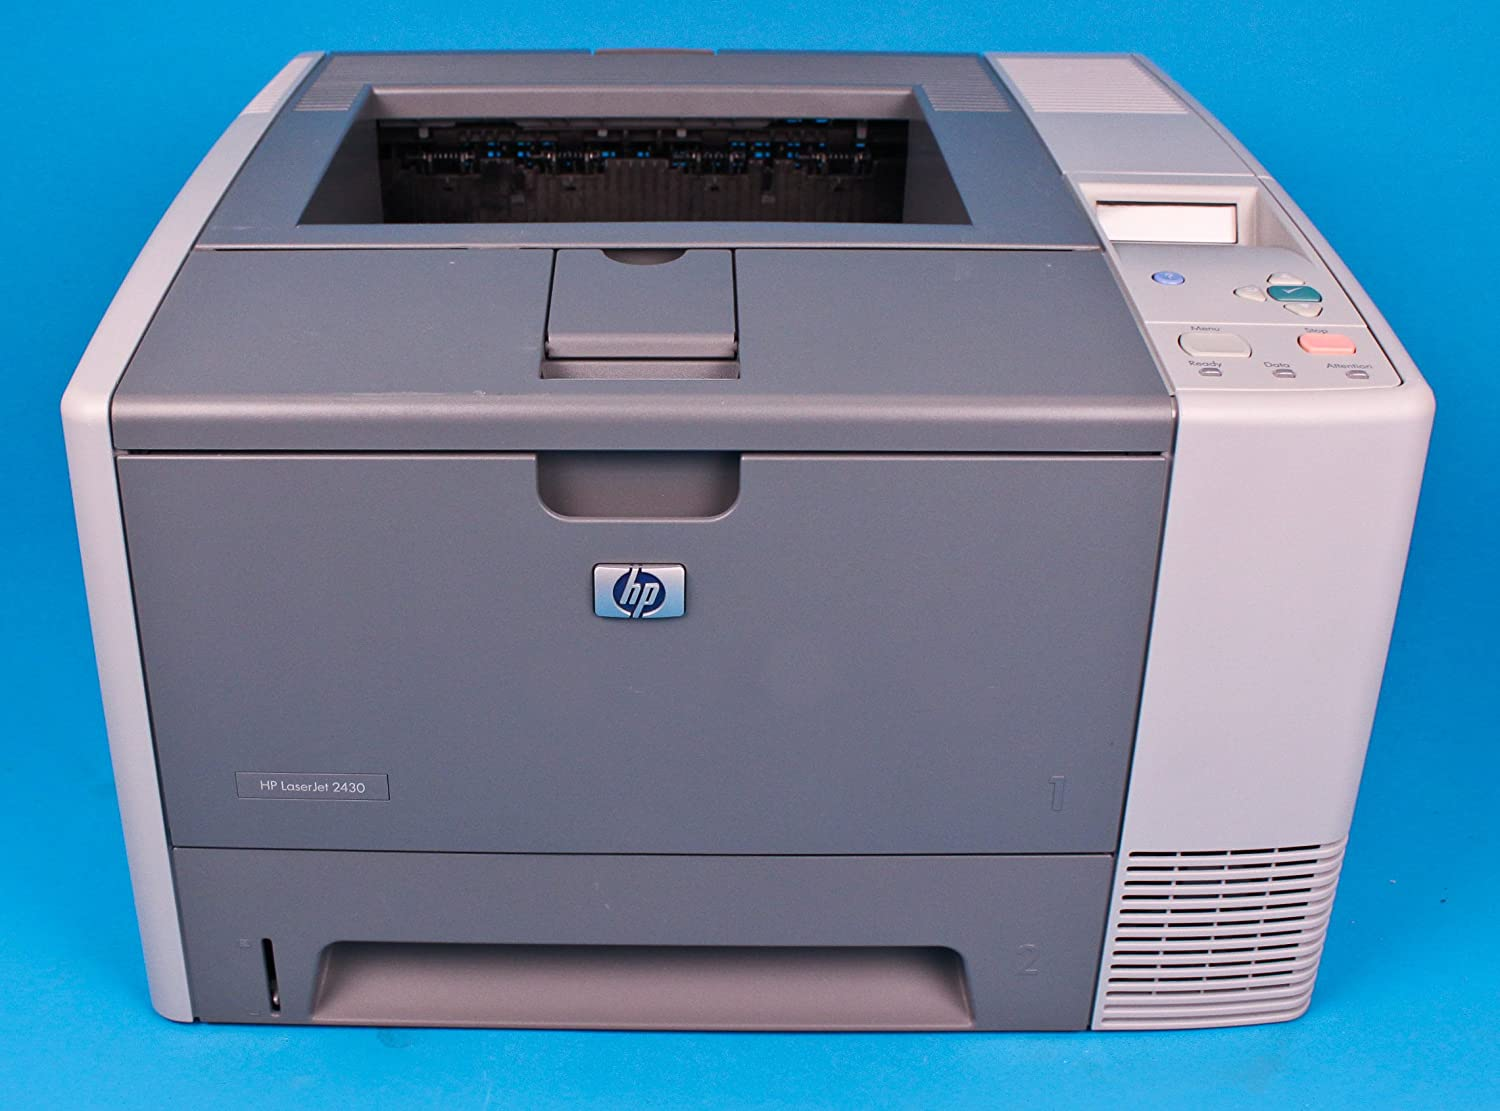 hp 1500 printer manual product user guide instruction u2022 rh testdpc co hp laserjet 1200 service manual hp laserjet 1200 series manual pdf